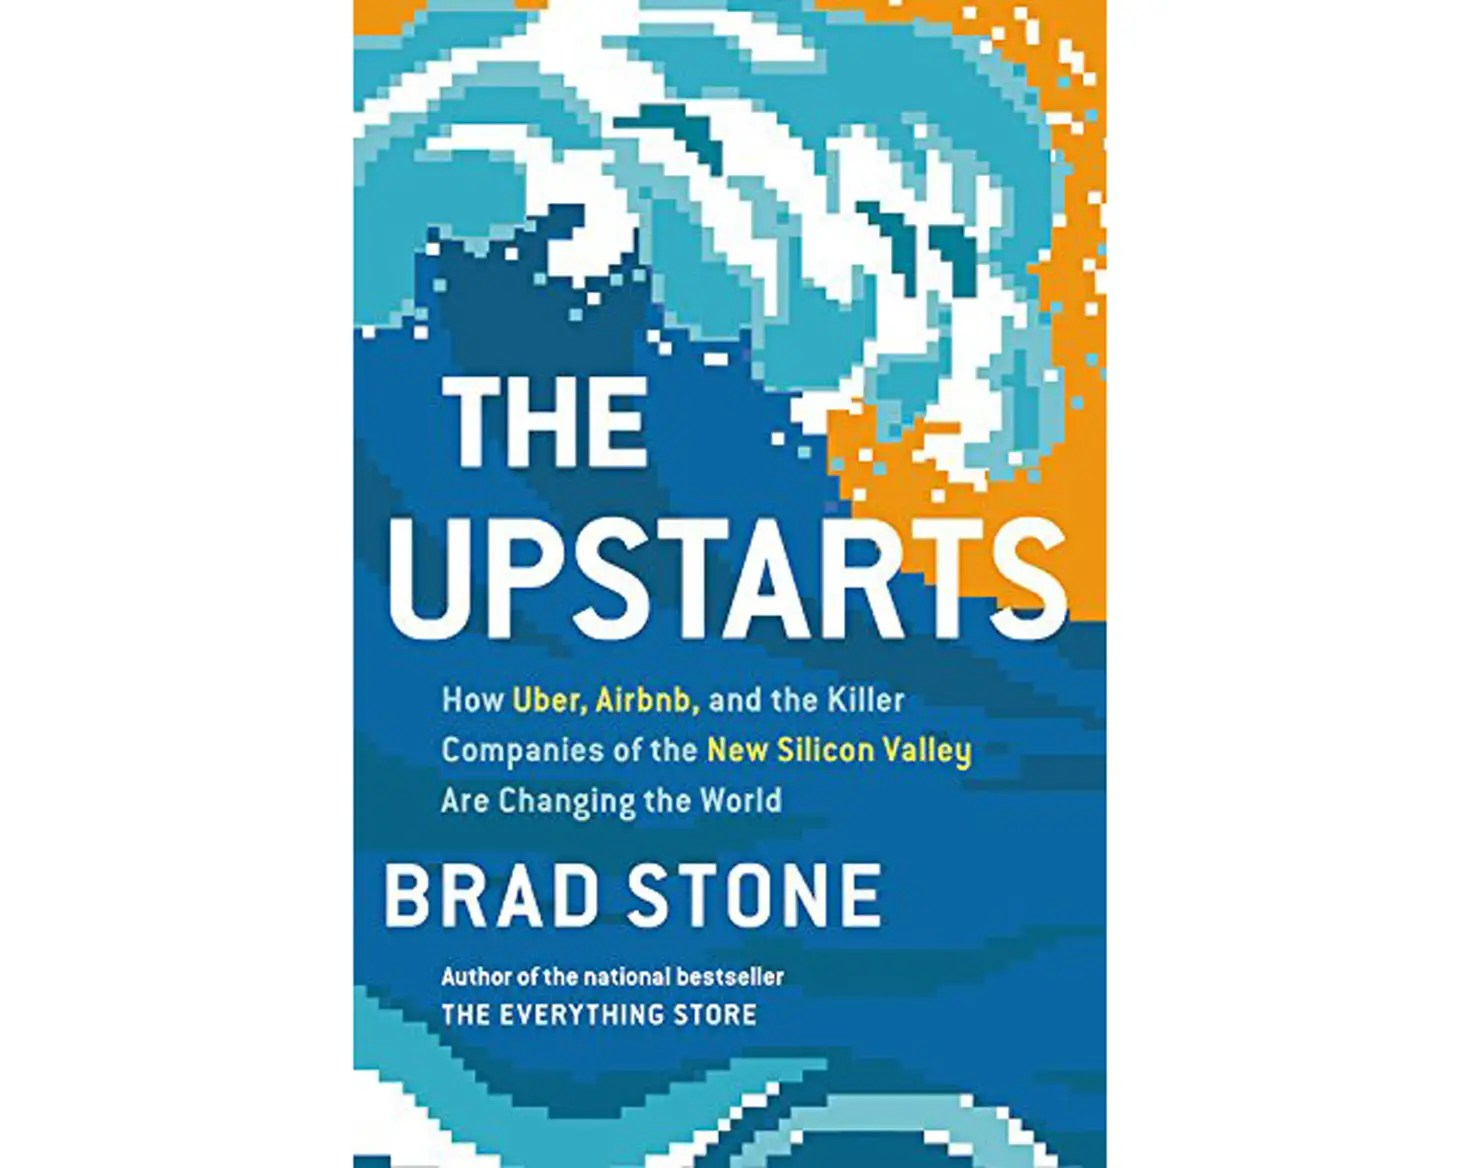 """The Upstarts: How Uber, Airbnb, and the Killer Companies of the New Silicon Valley Are Changing the World"" by Brad Stone"